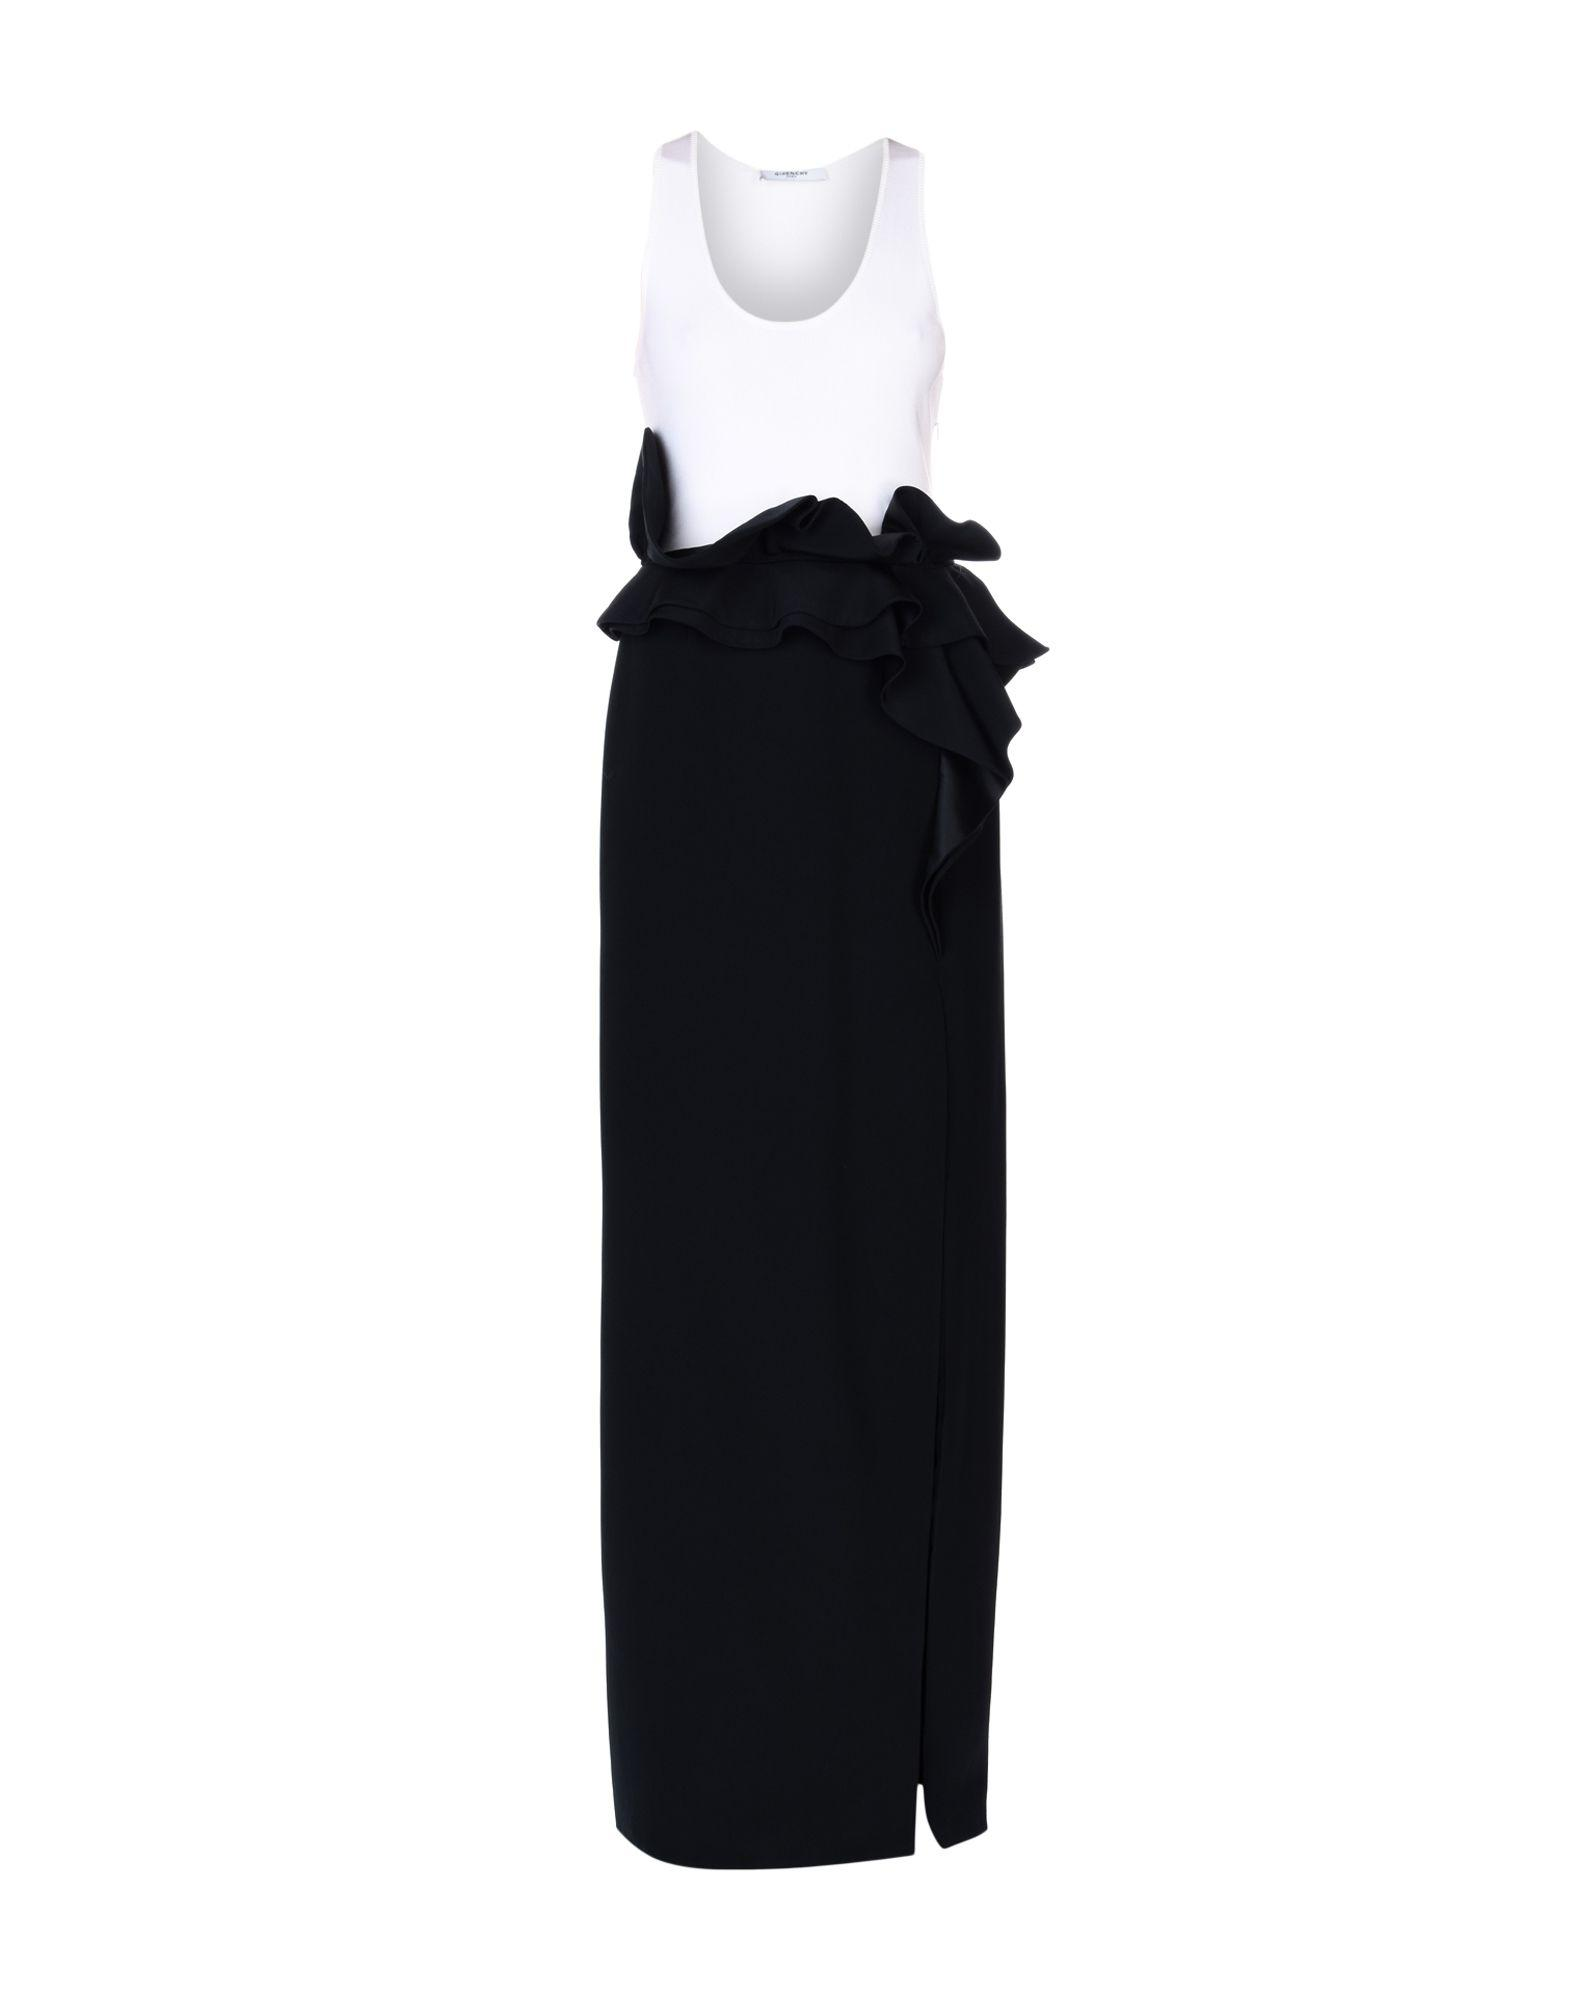 Givenchy Formal Dress In White